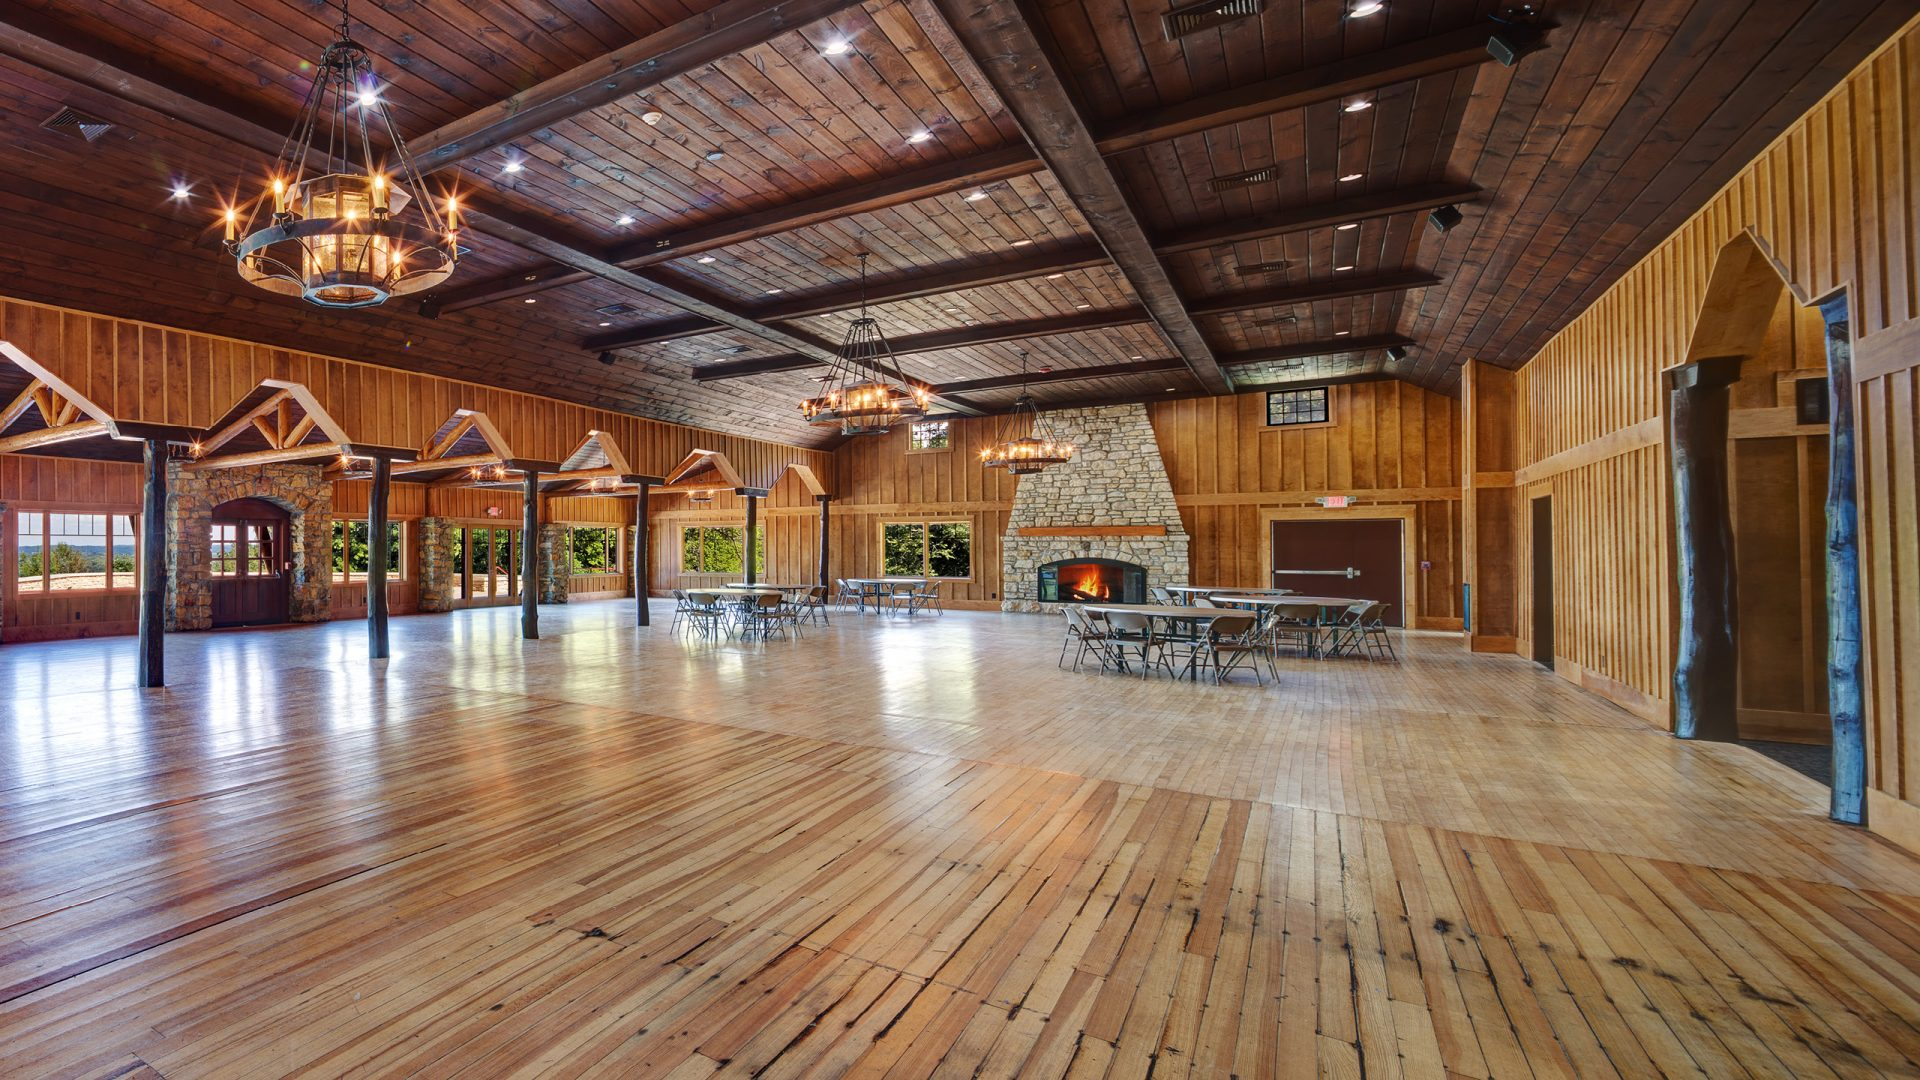 wooden interior of Eagle Point Lodge with stone fire place